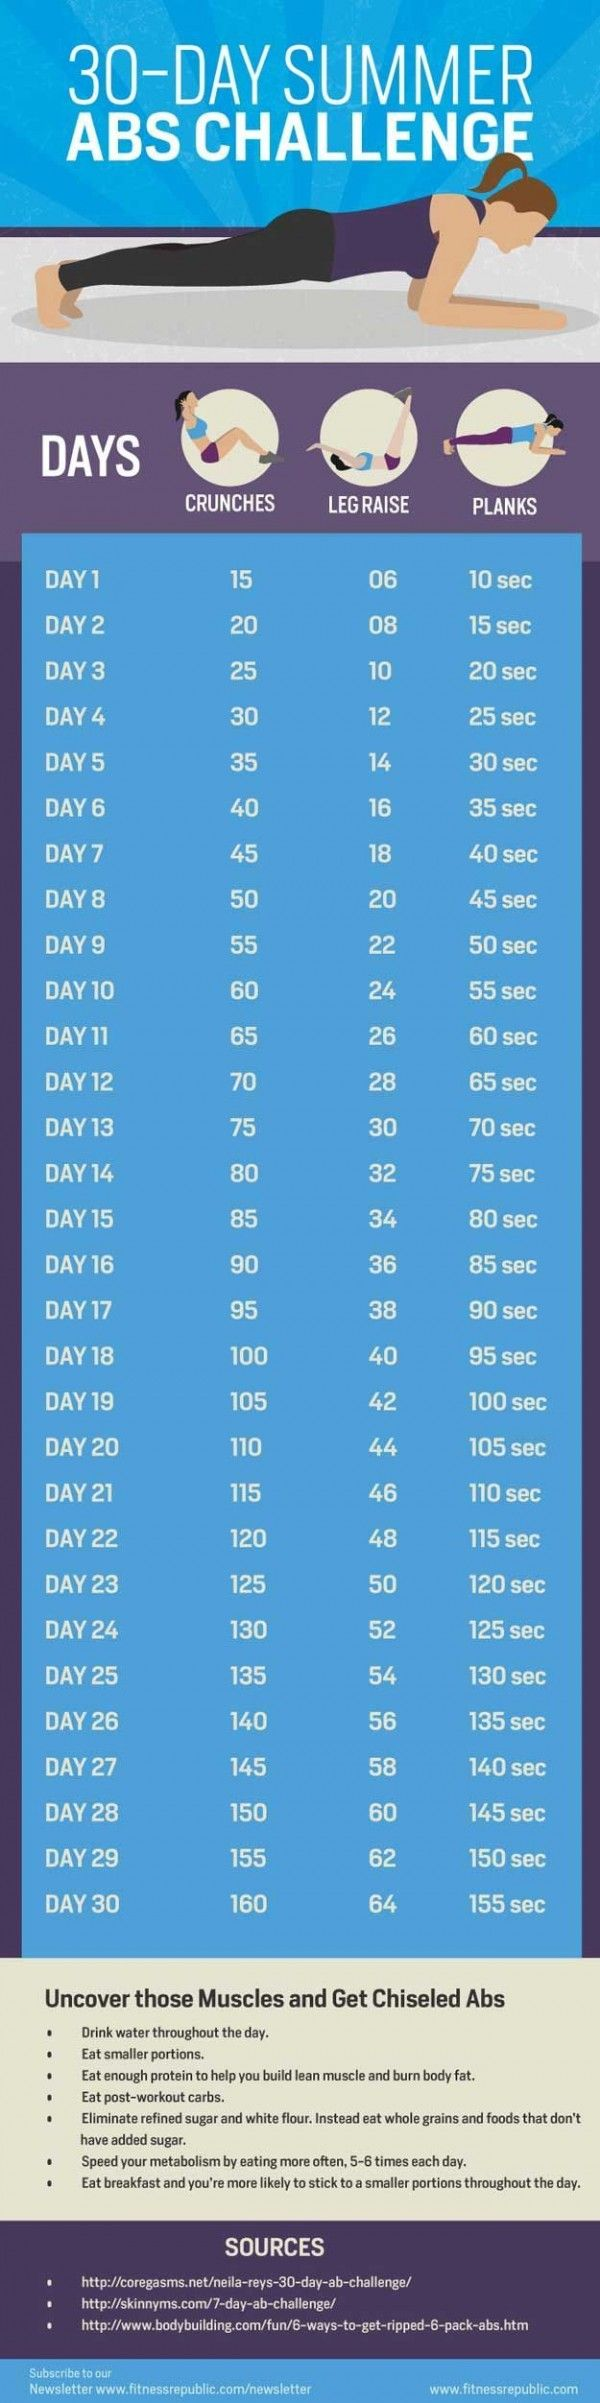 Check out the 30-Day Summer Abs Challenge #workout #fitness